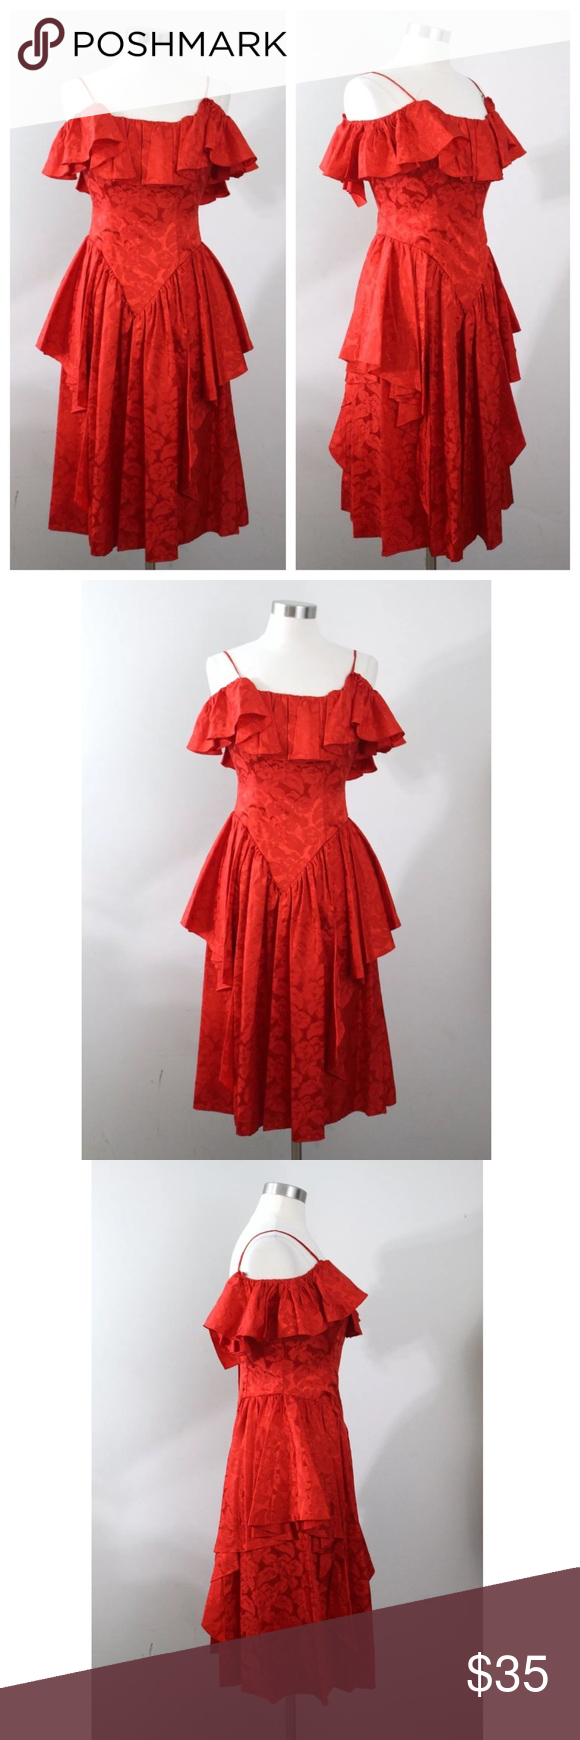 Vintage s red jc penney off shoulder prom dress vtg s red jc